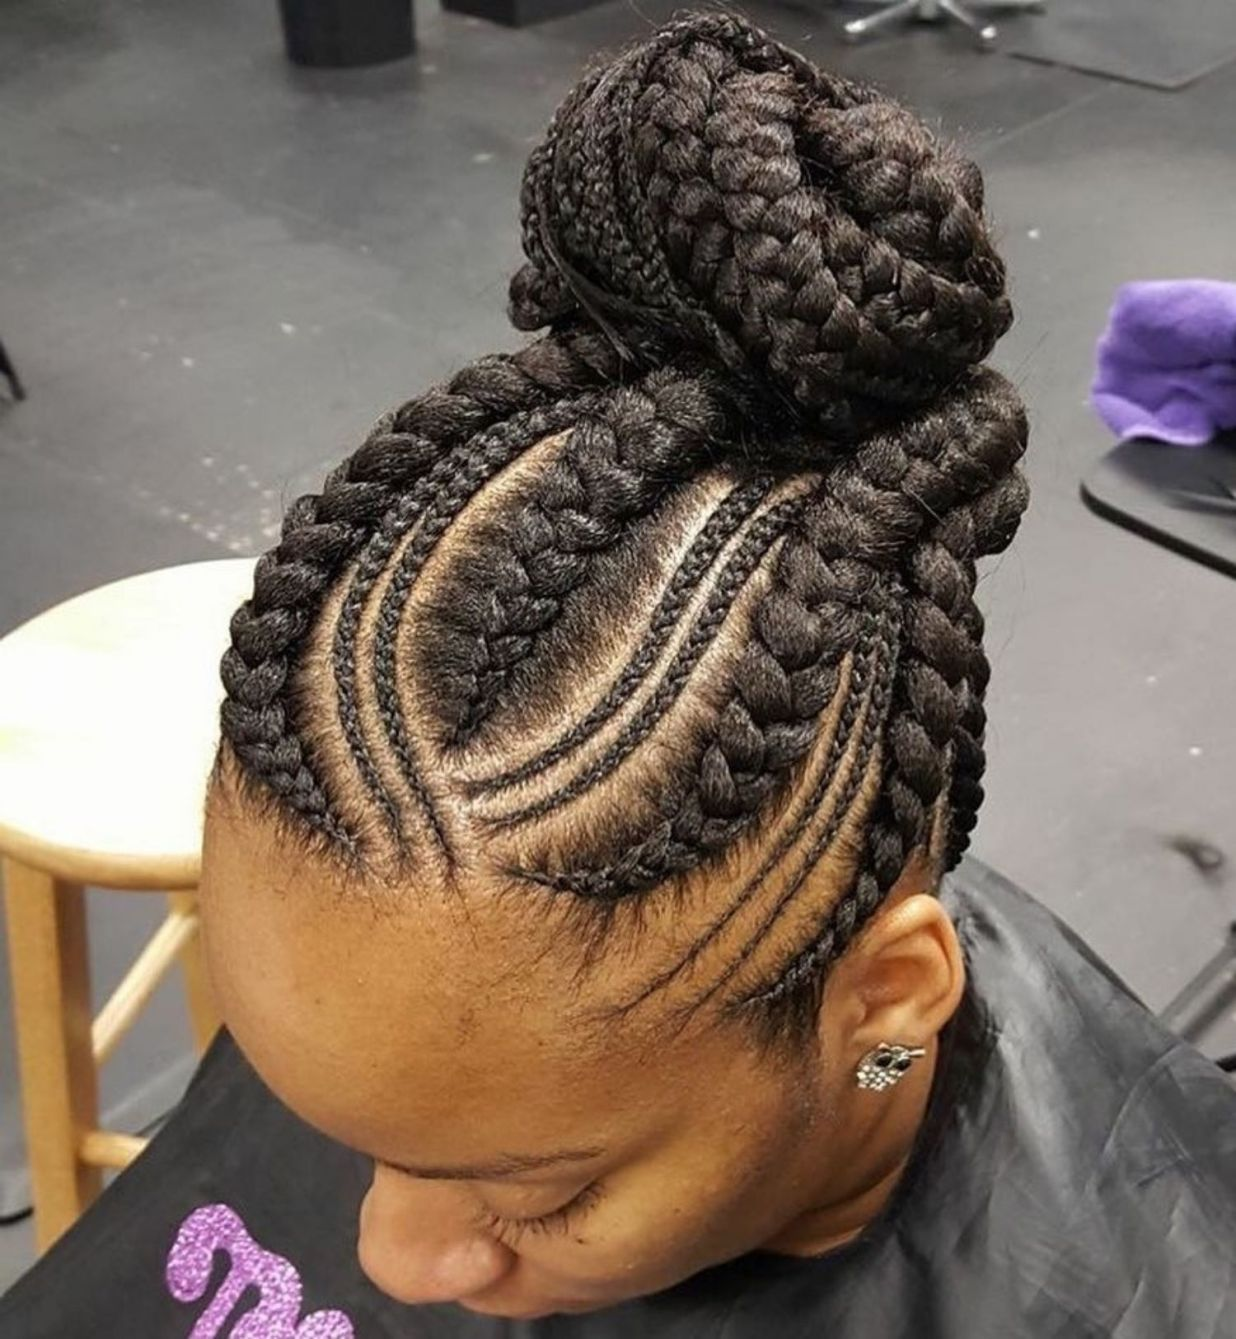 70 Best Black Braided Hairstyles That Turn Heads In 2020 Braids For Black Hair Cool Braid Hairstyles Braided Hairstyles